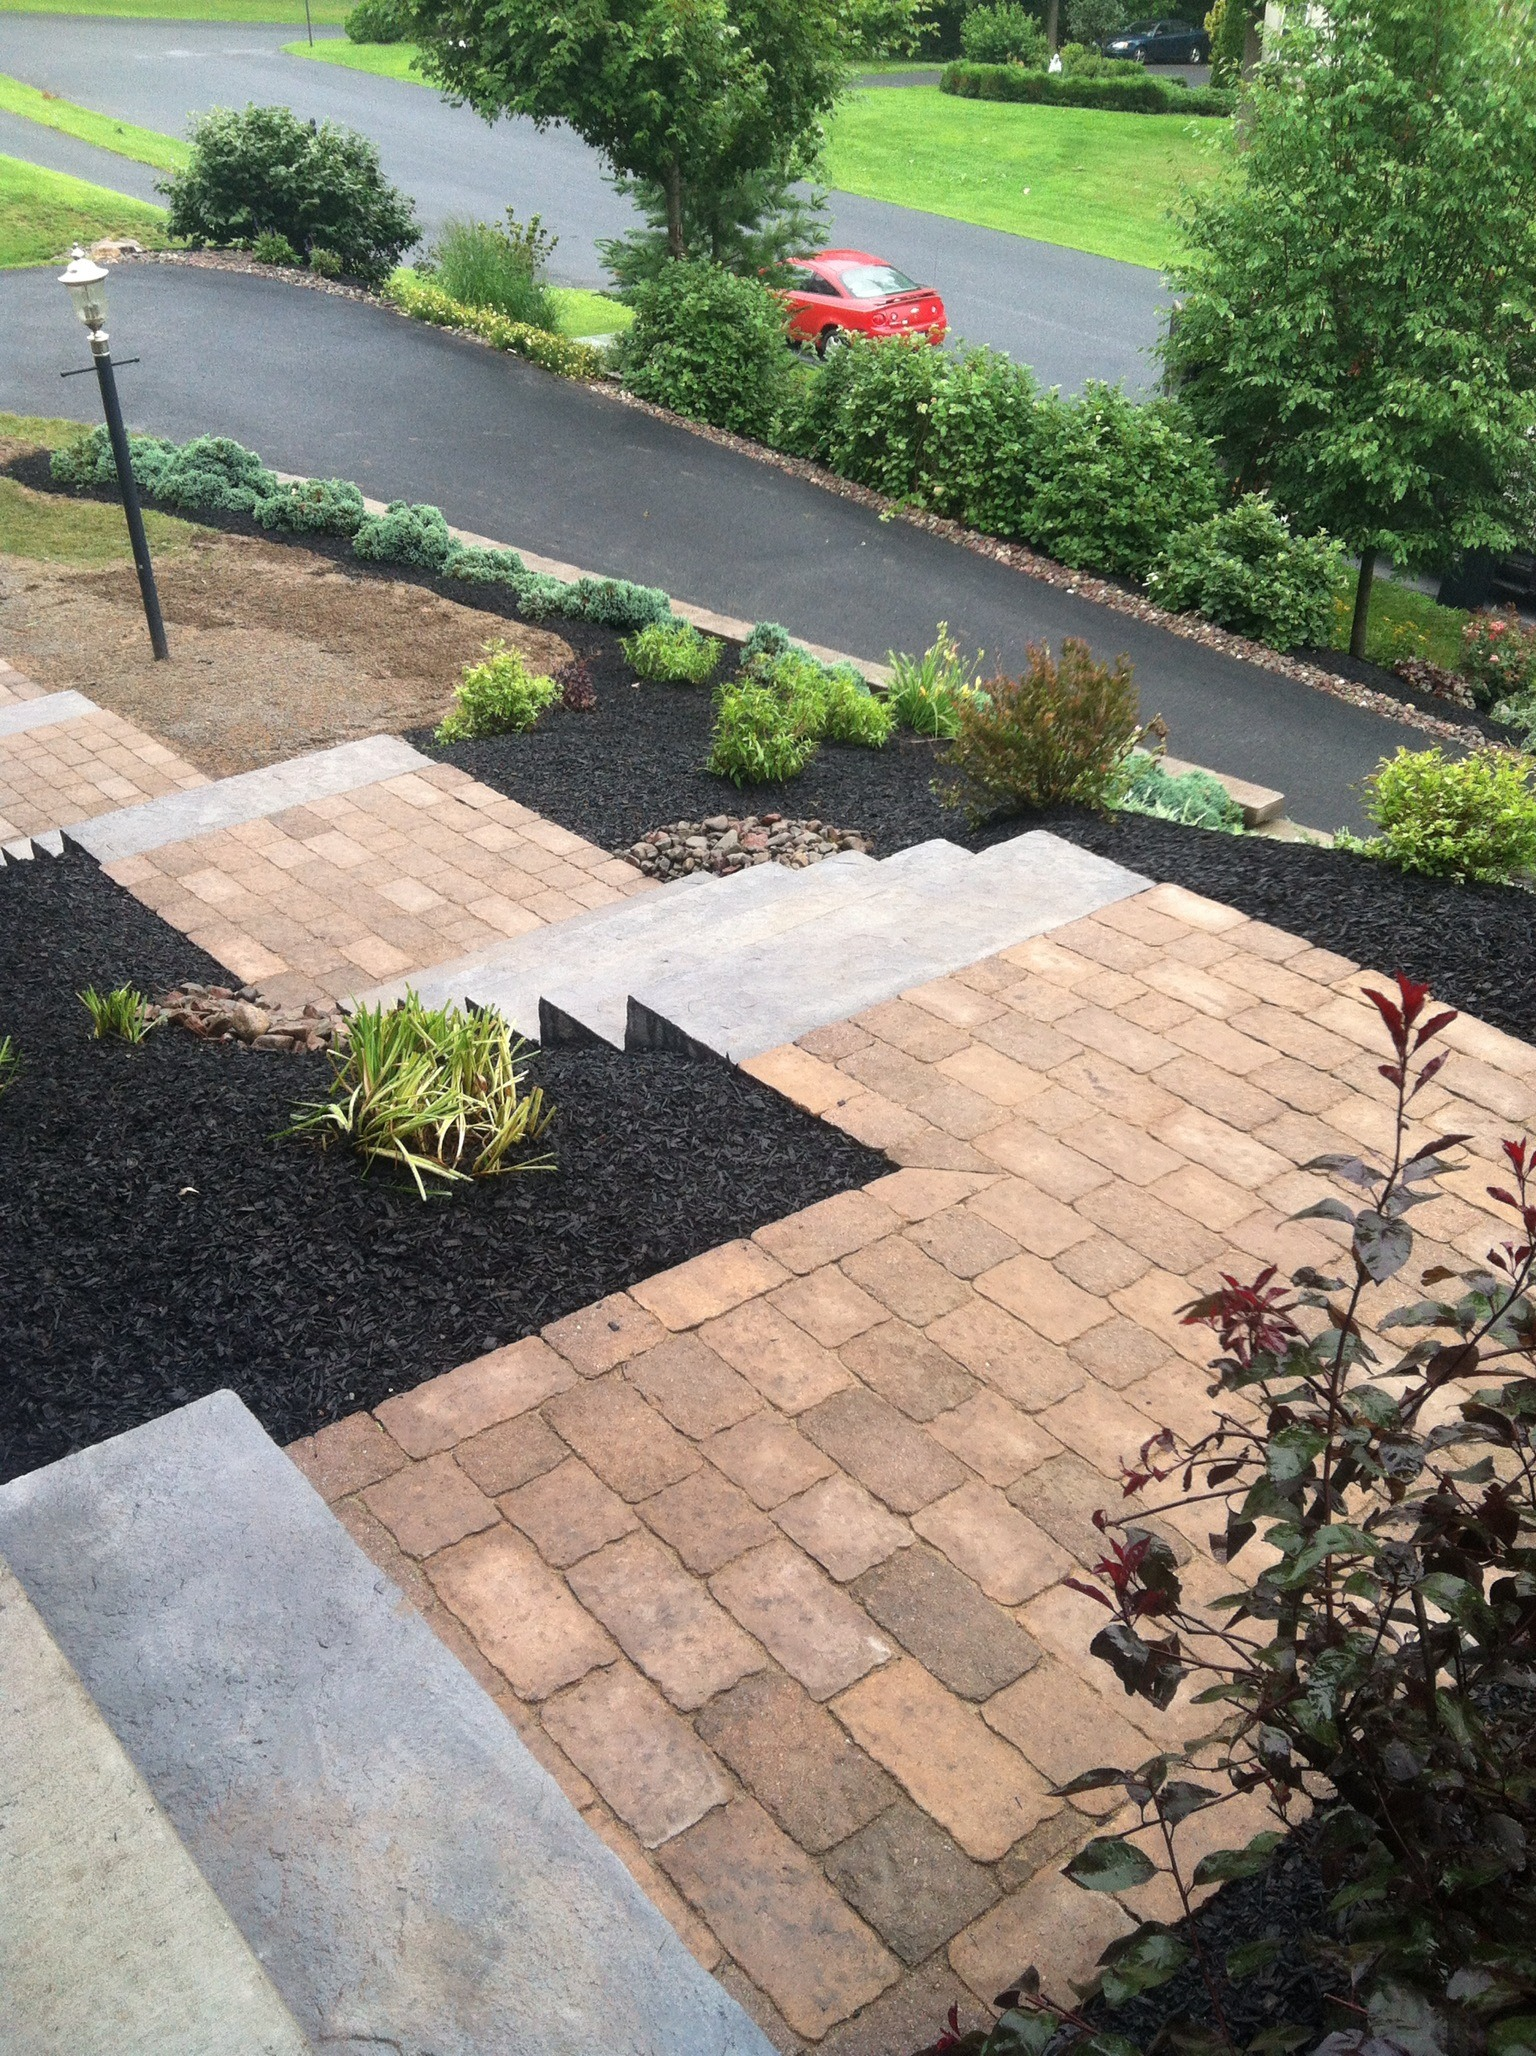 Professional flagstone installation company in Reading, PA